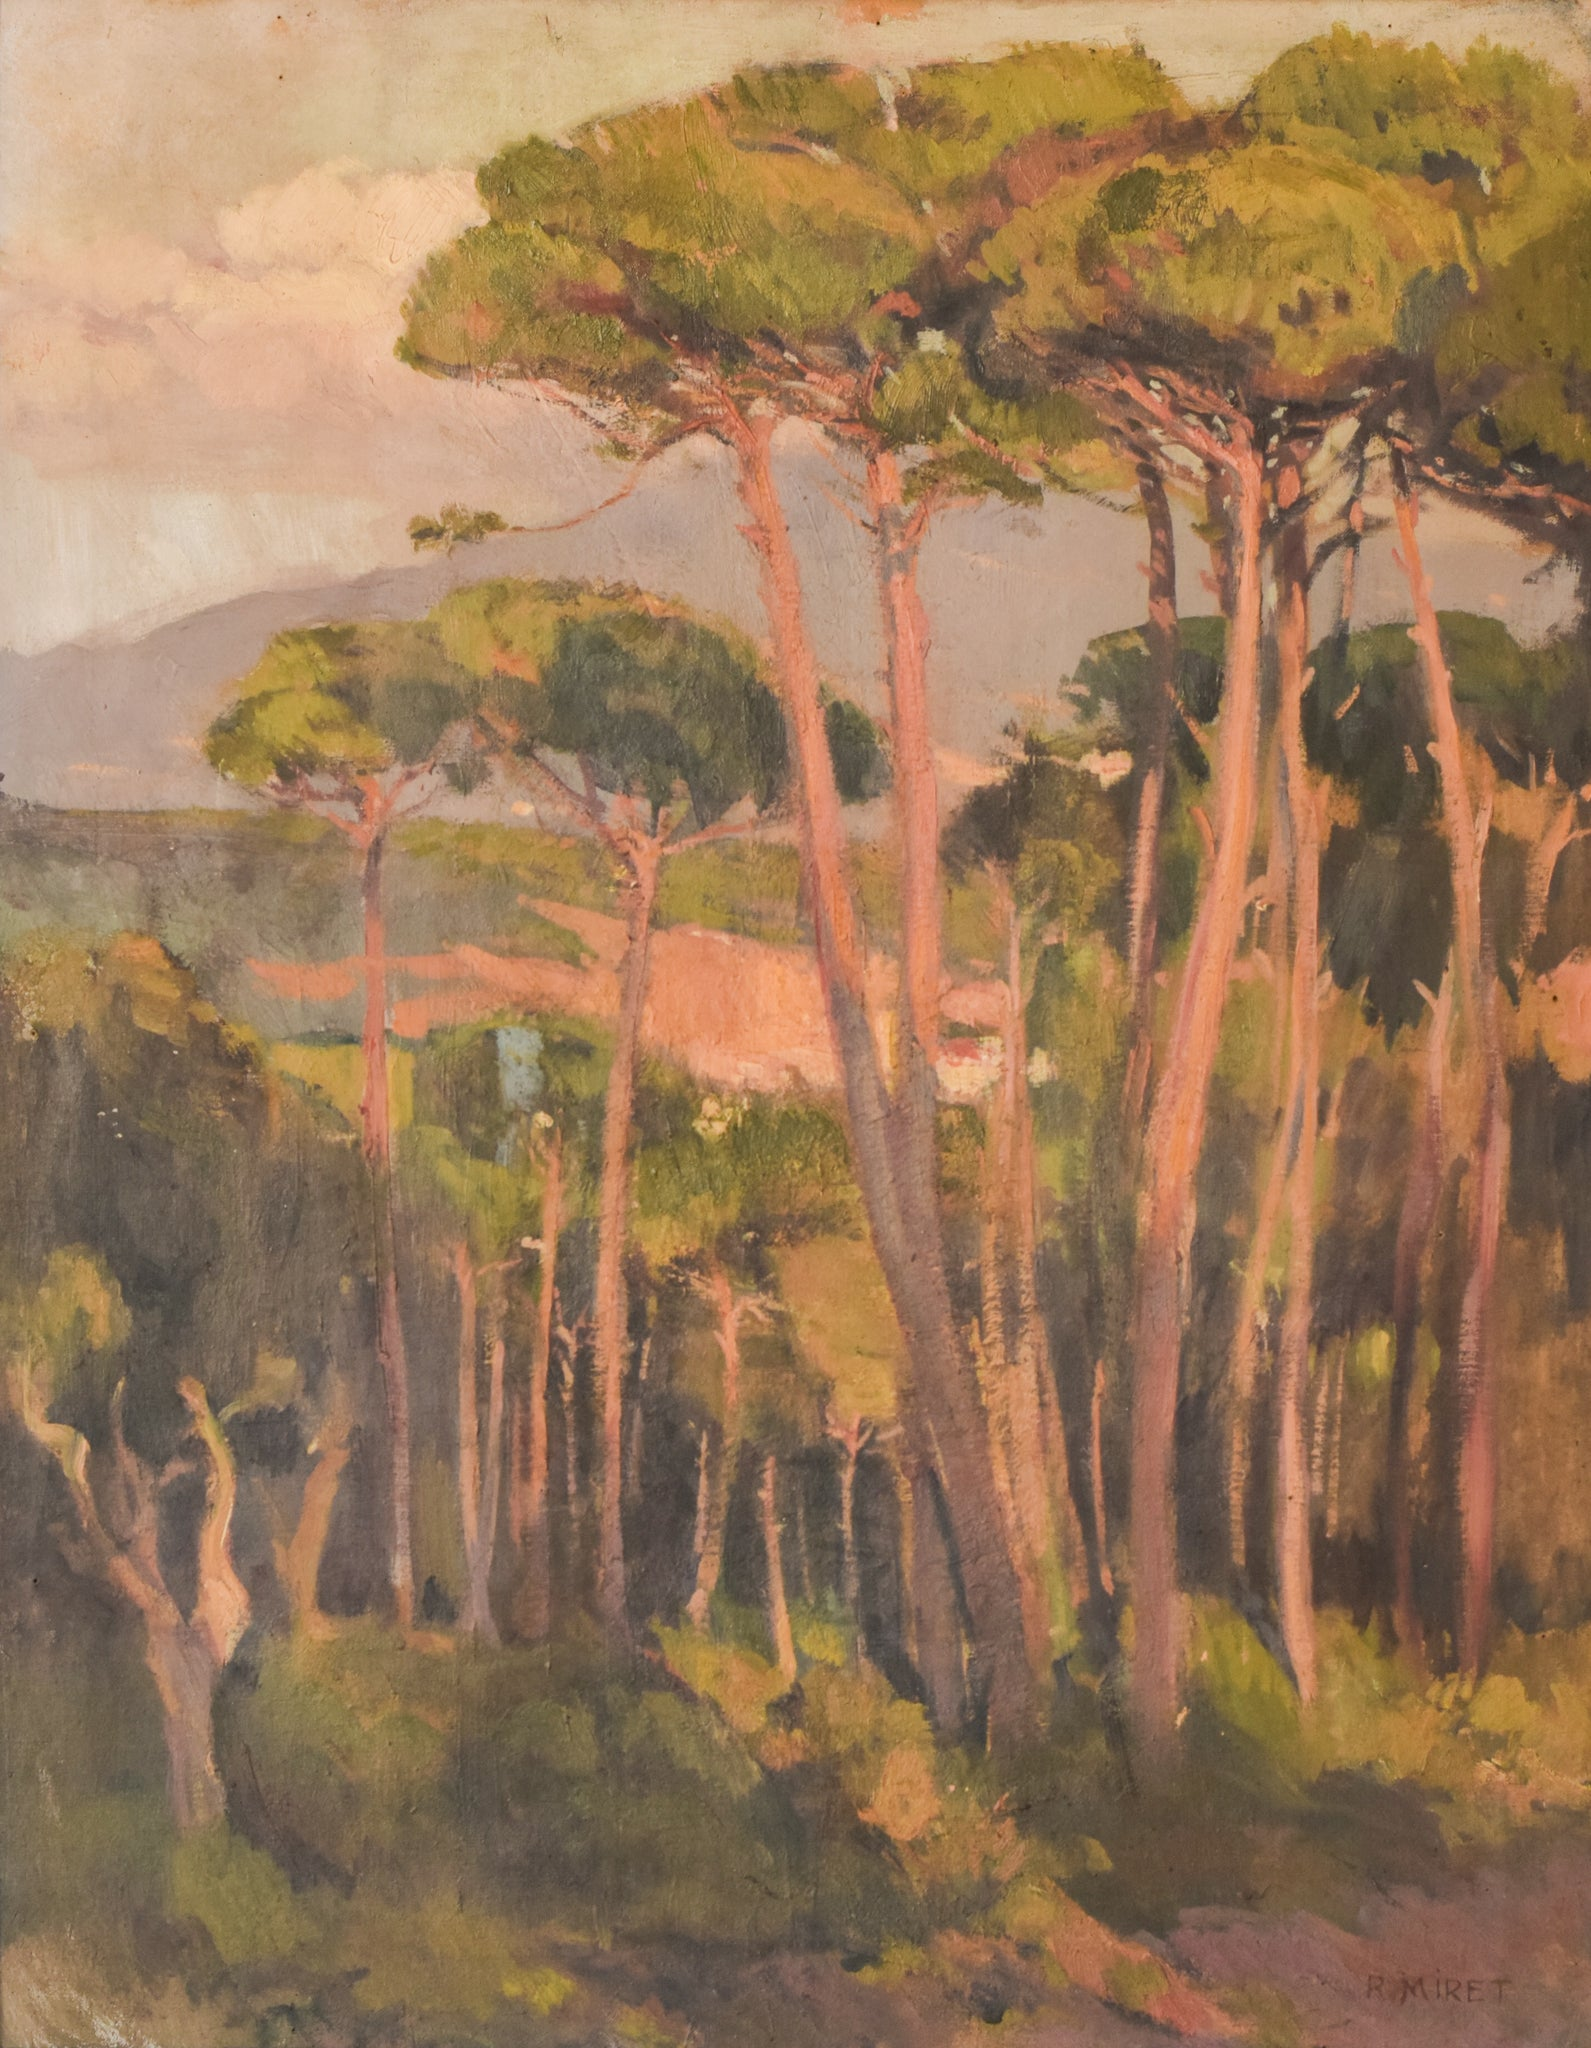 Impressionist Landscape of Trees Bathing In a Golden Light. Oil on Canvas By Ramon Miret